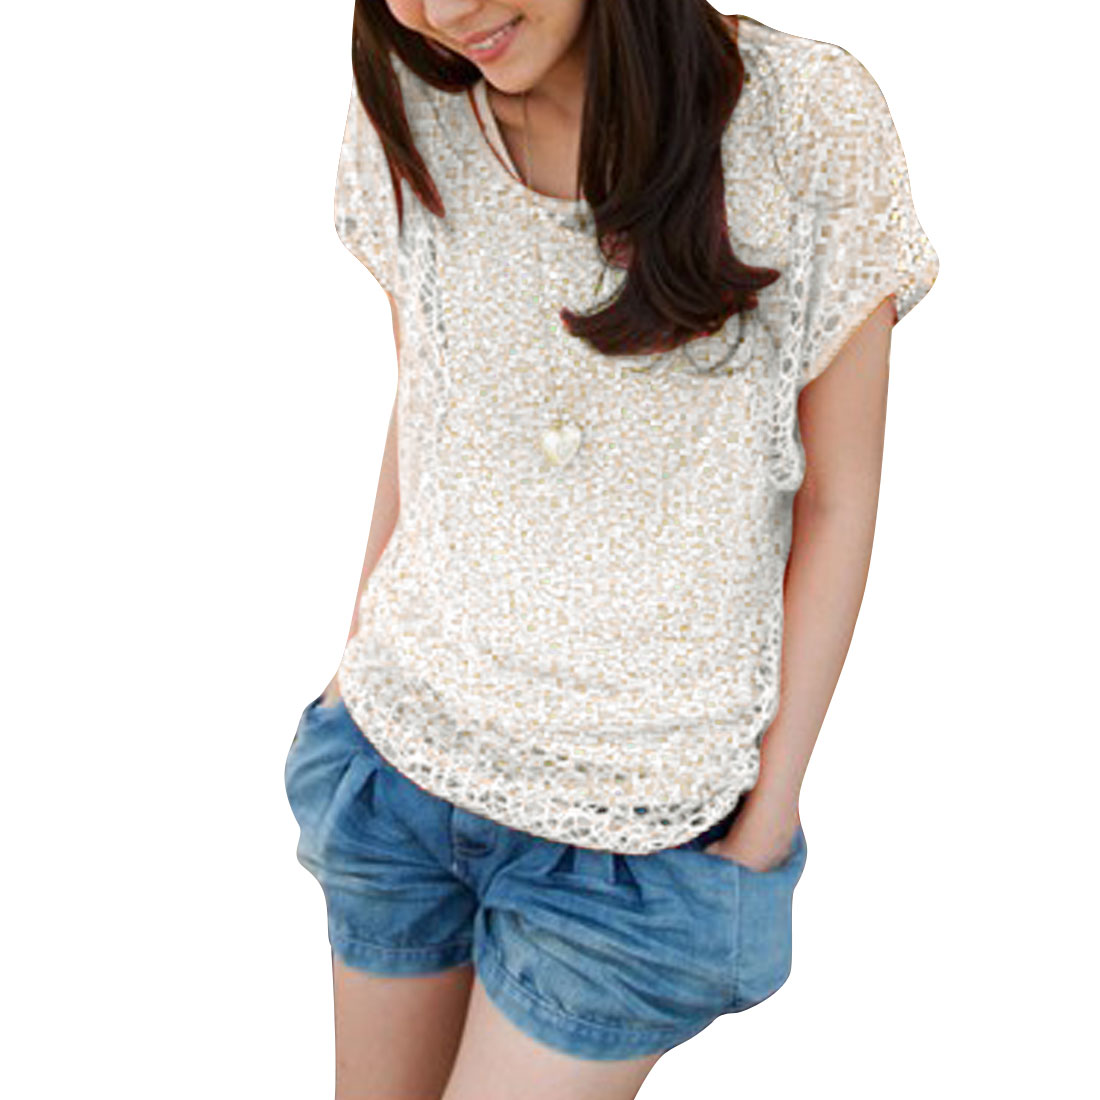 Women Pullover Sleeveless Crochet Lace Decor Tank Top & Short Sleeve Hollow Out Smock White XS